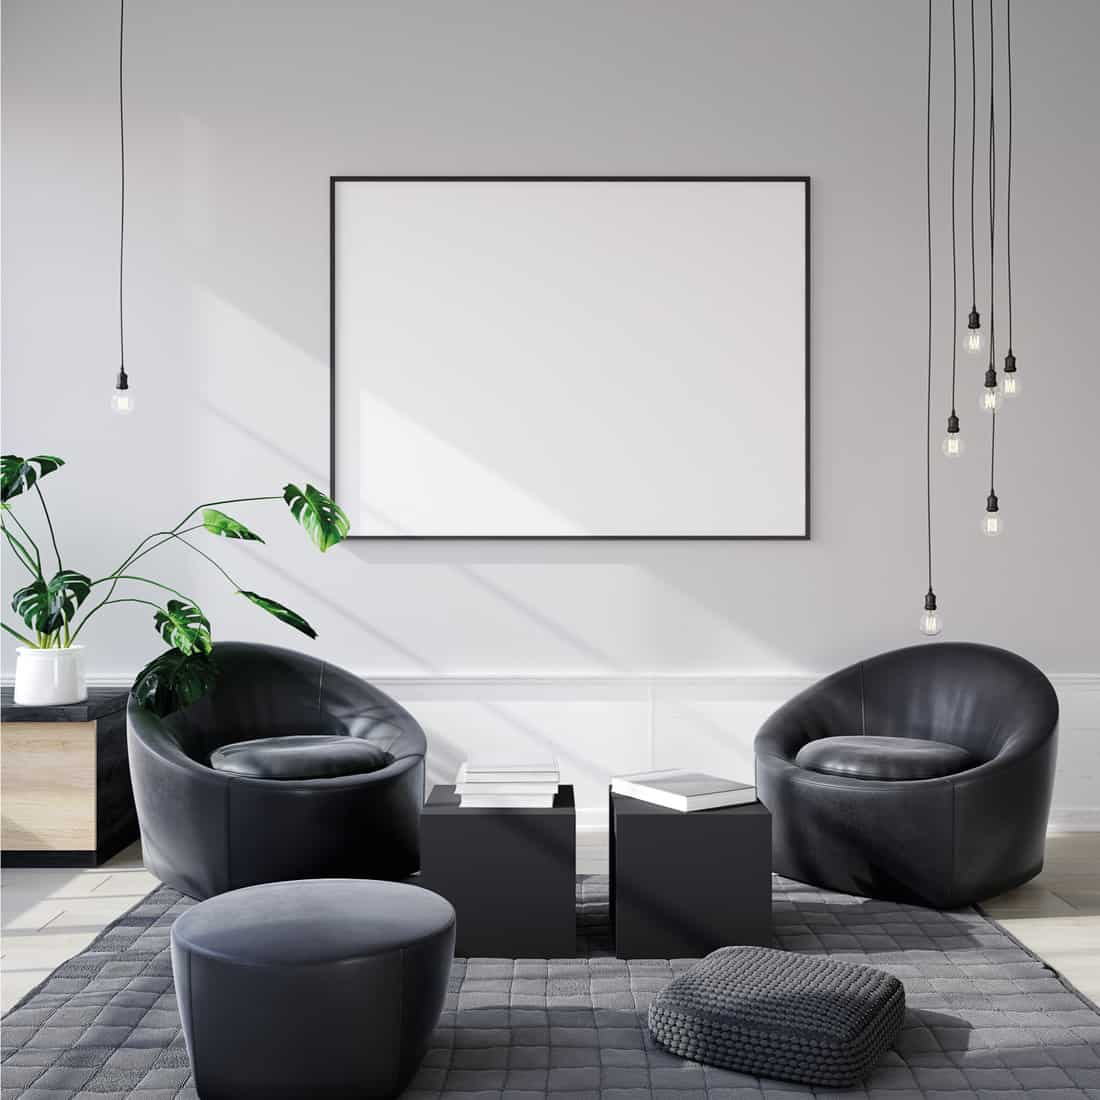 Armchairs, Storage Cubes, and Cushion Seats and hanging pendant bulb lights in a modern living room in black and grey theme